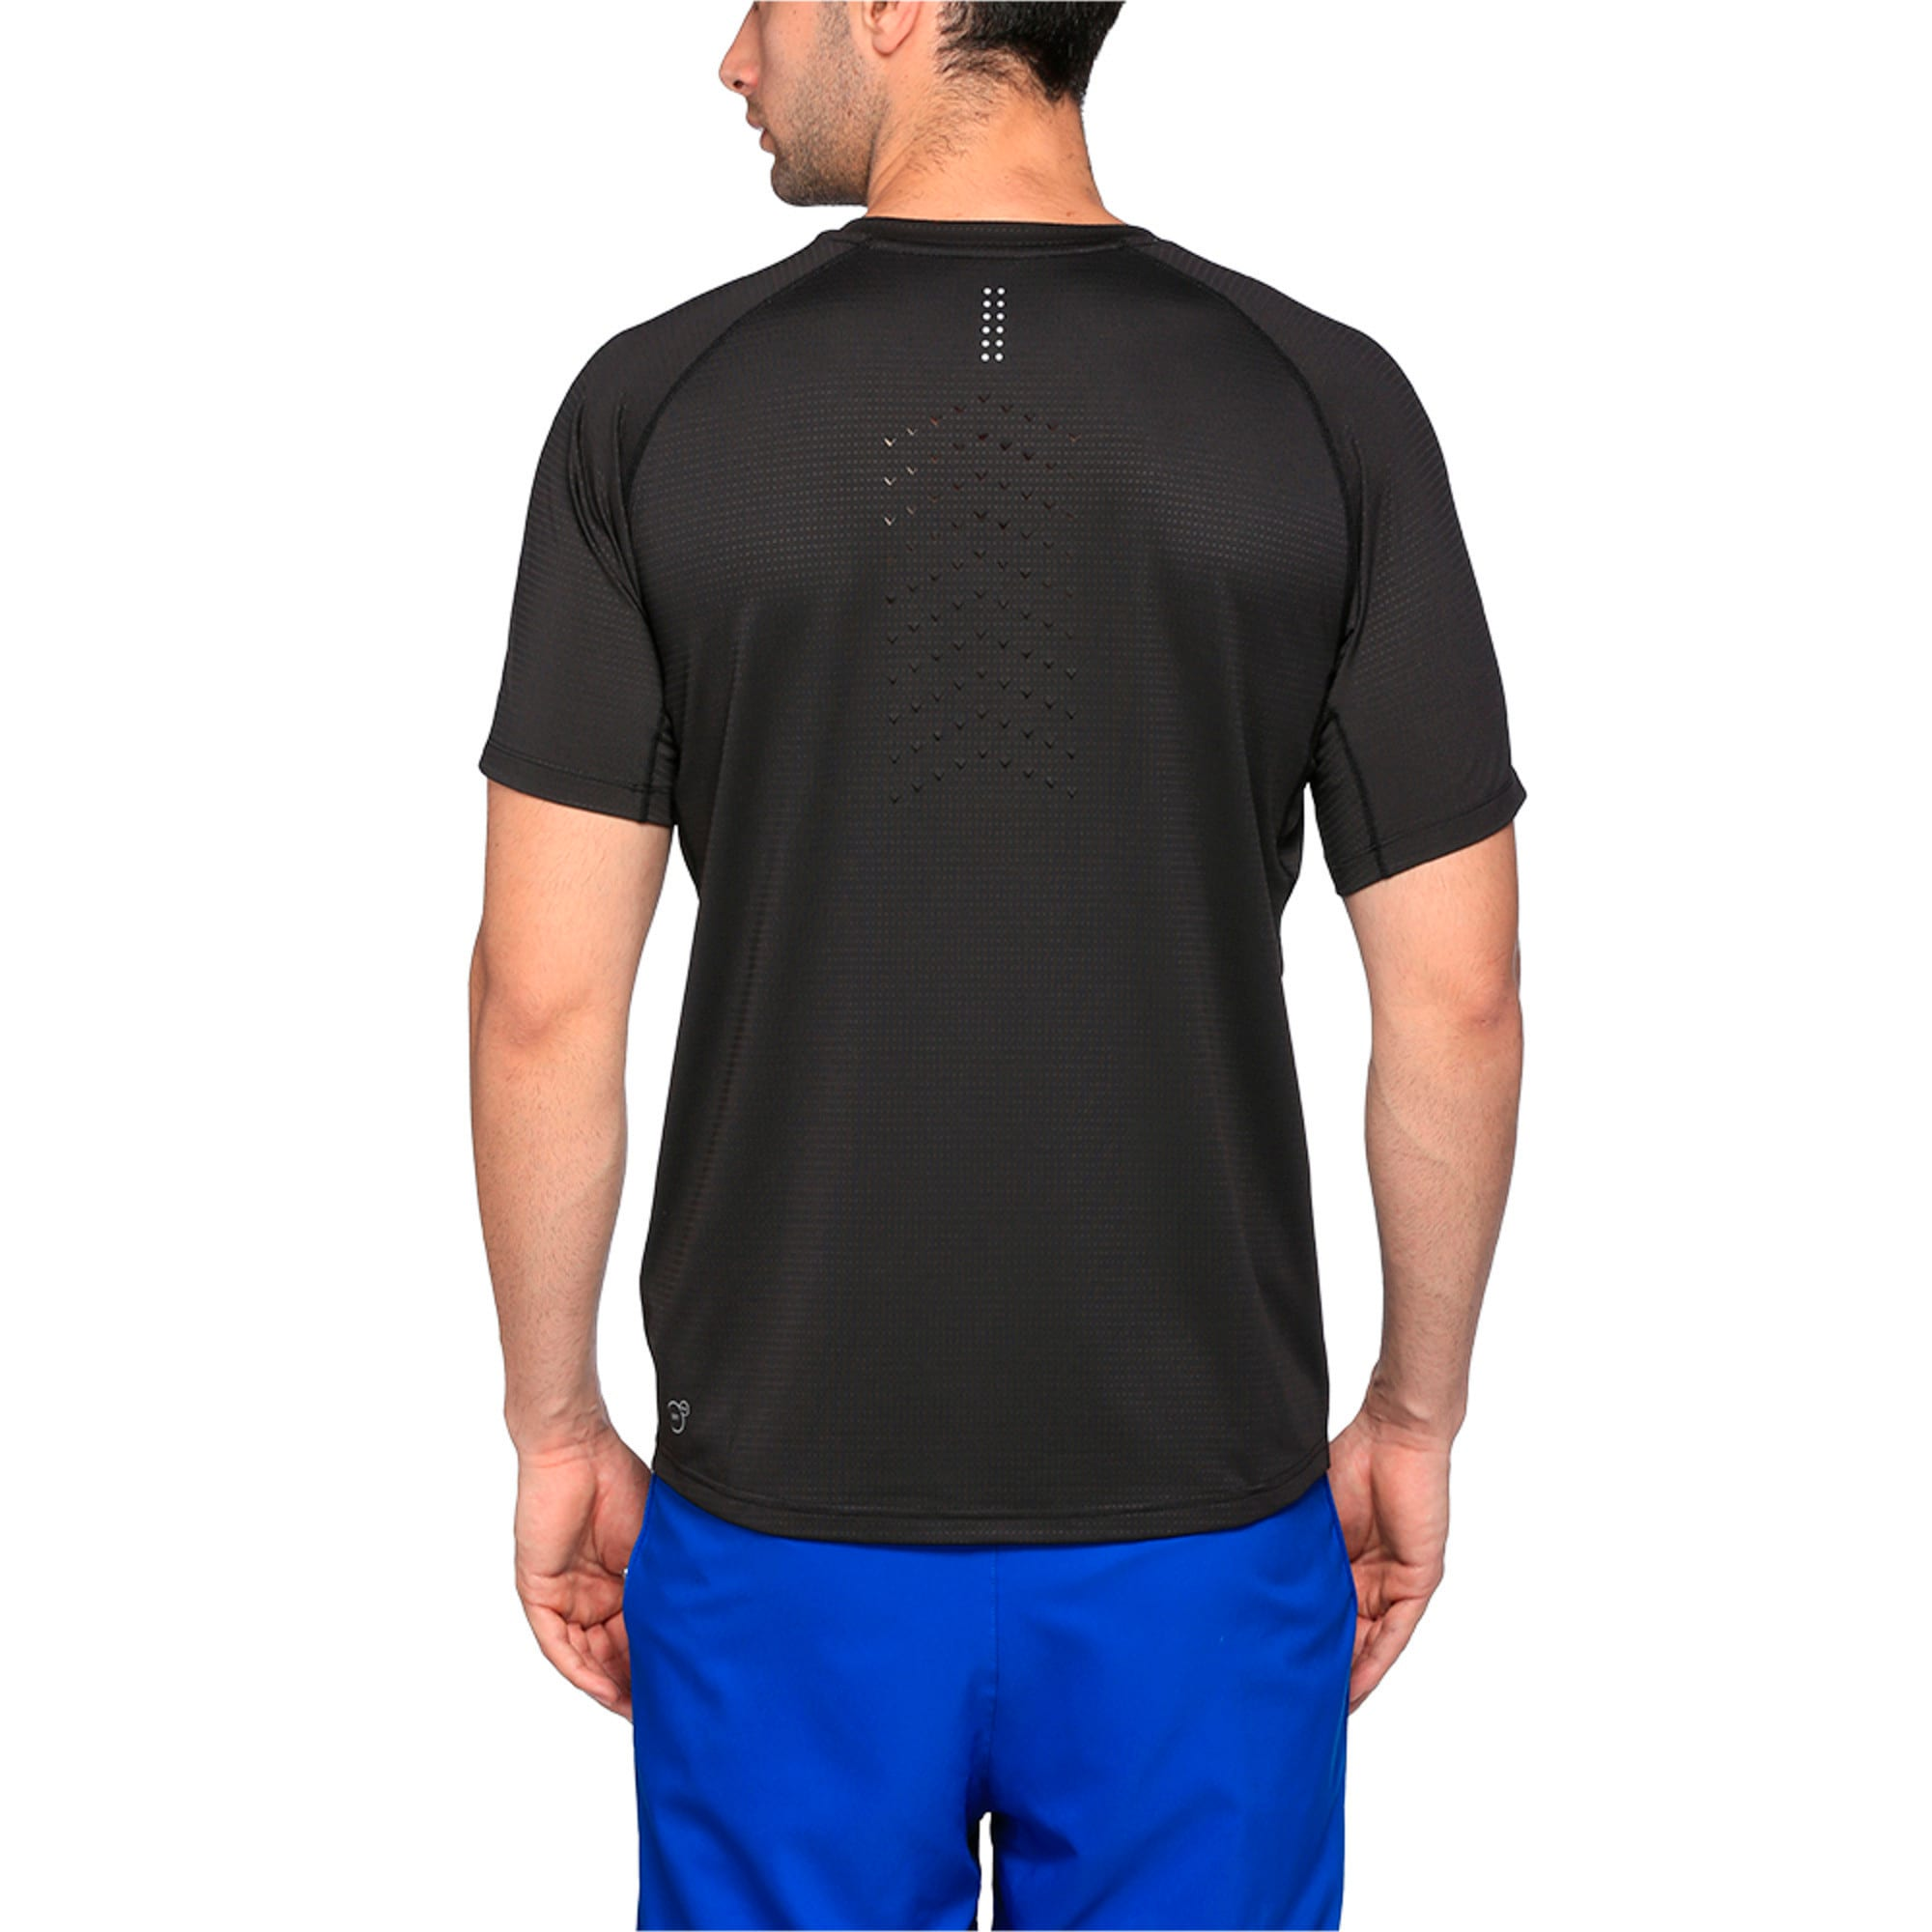 Thumbnail 2 of Running Men's Speed T-Shirt, Puma Black Heather, medium-IND